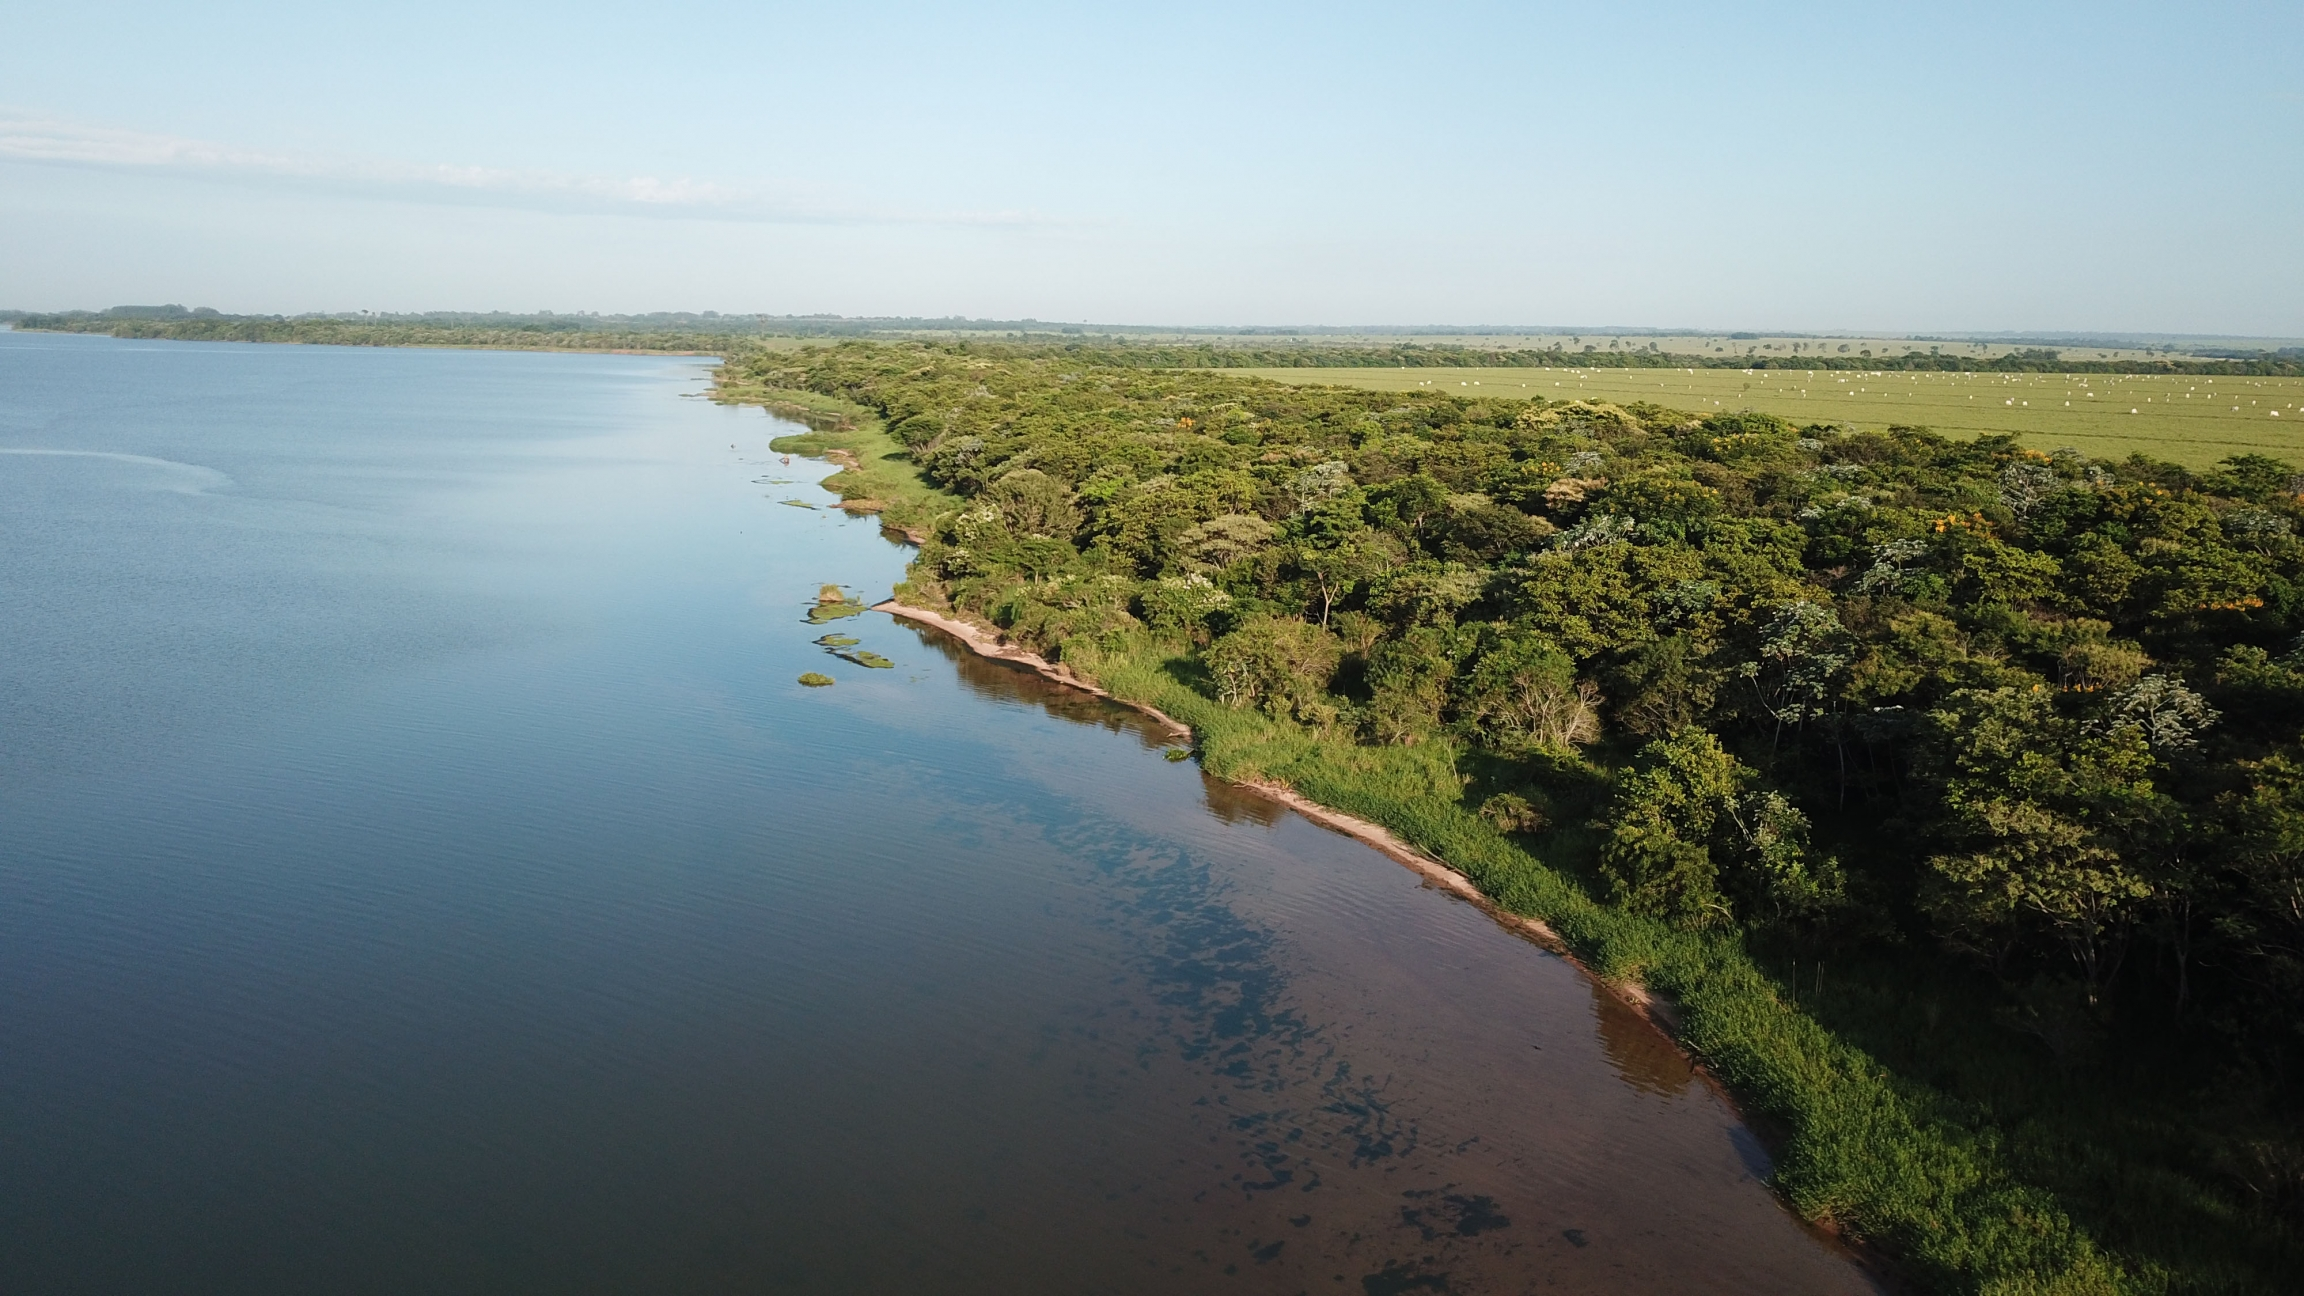 The Atlantic rainforest in Brazil is a beacon for global forest restoration.